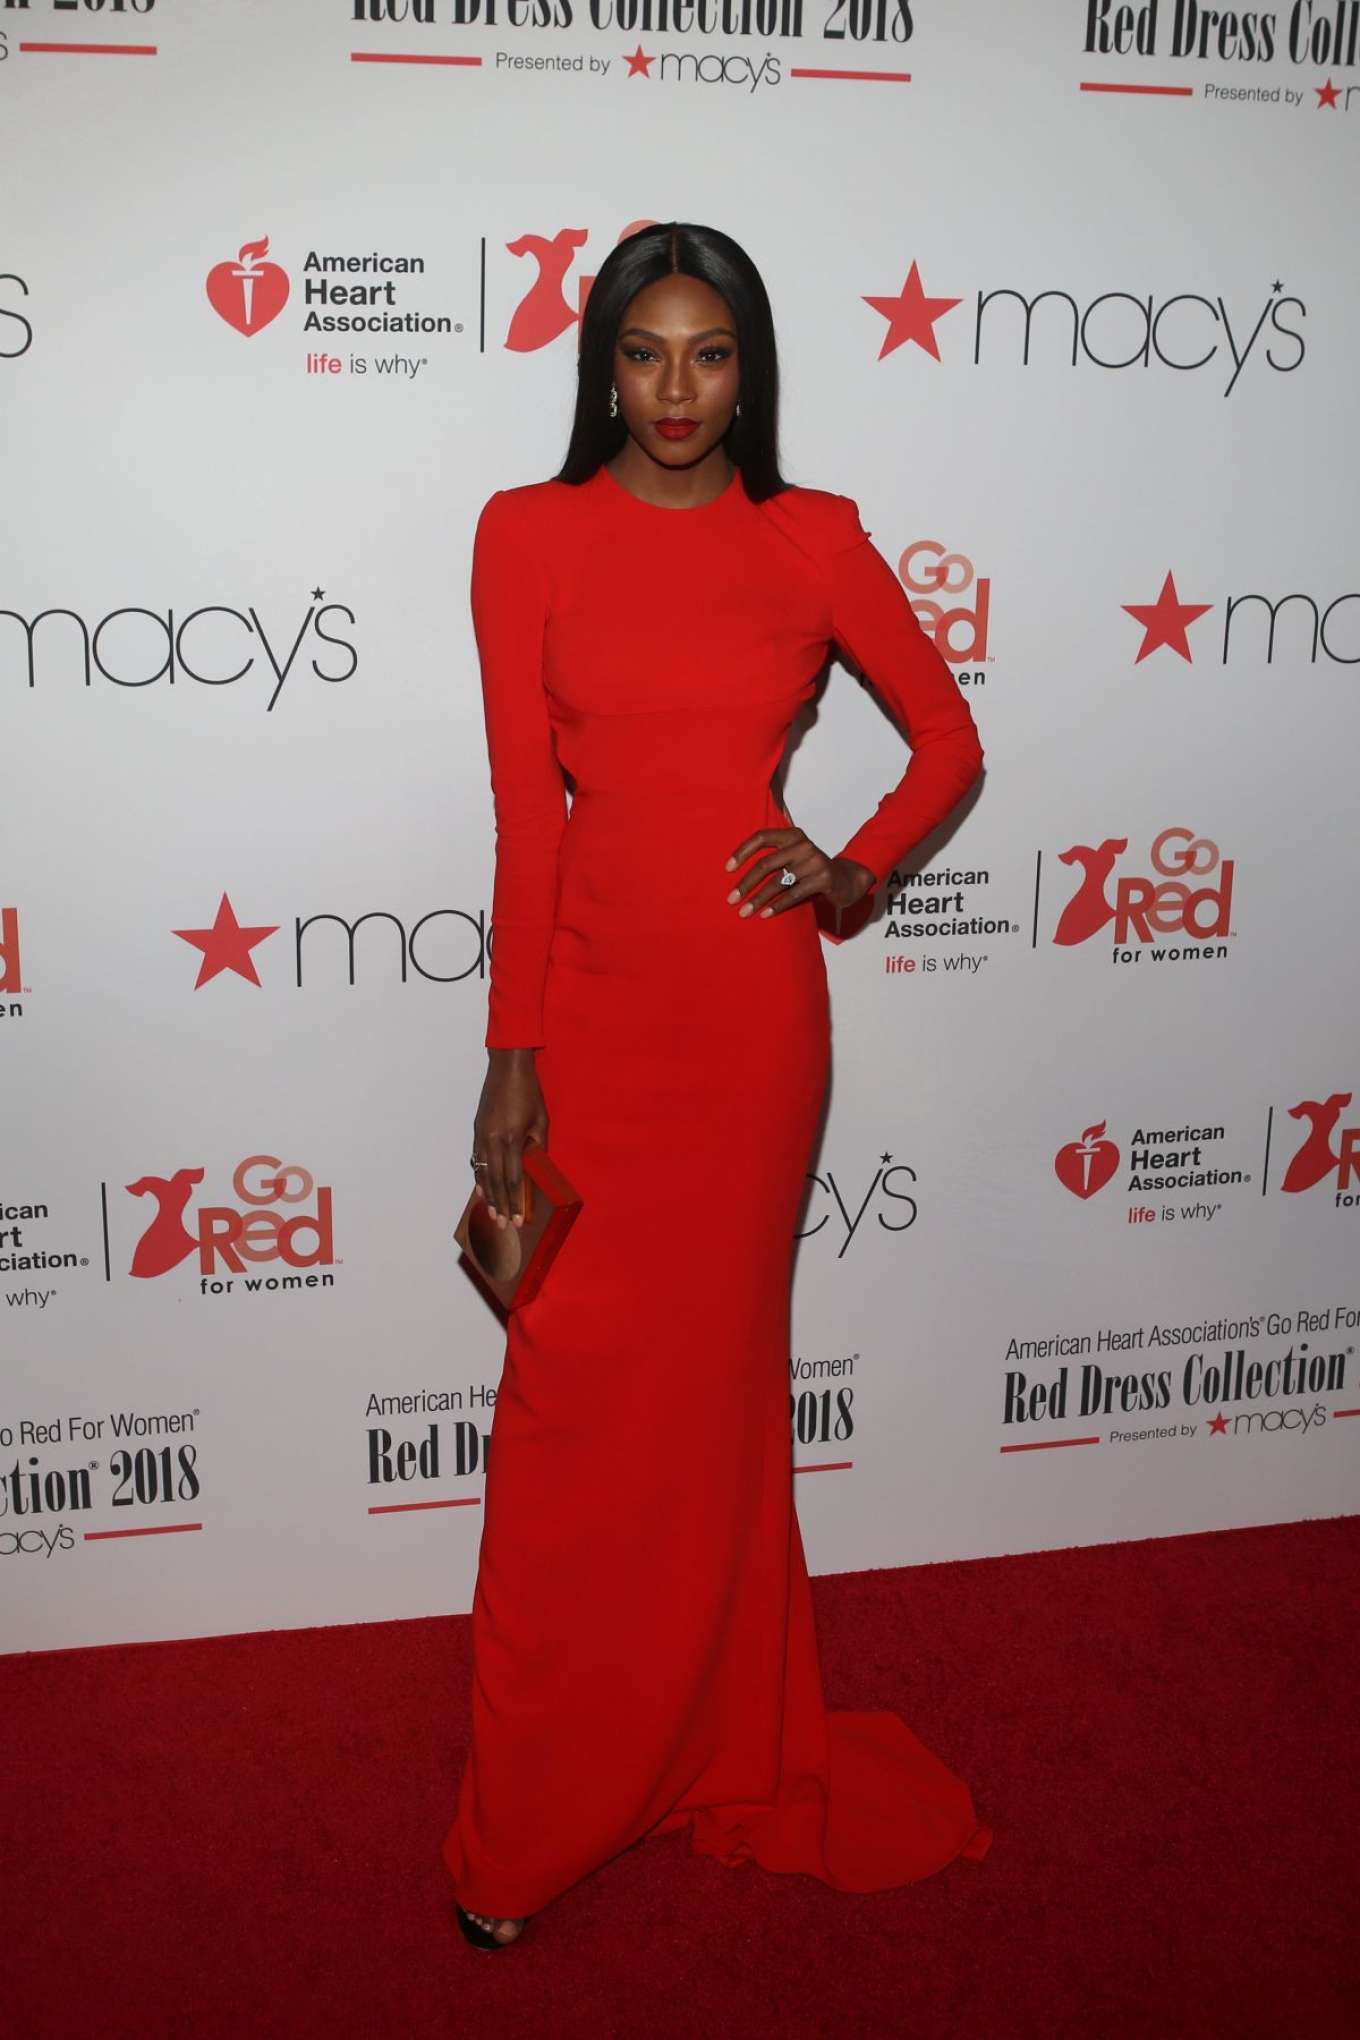 Afiya Bennett - American Heart Association's Go Red for Women Red Dress Collection 2018 in NY